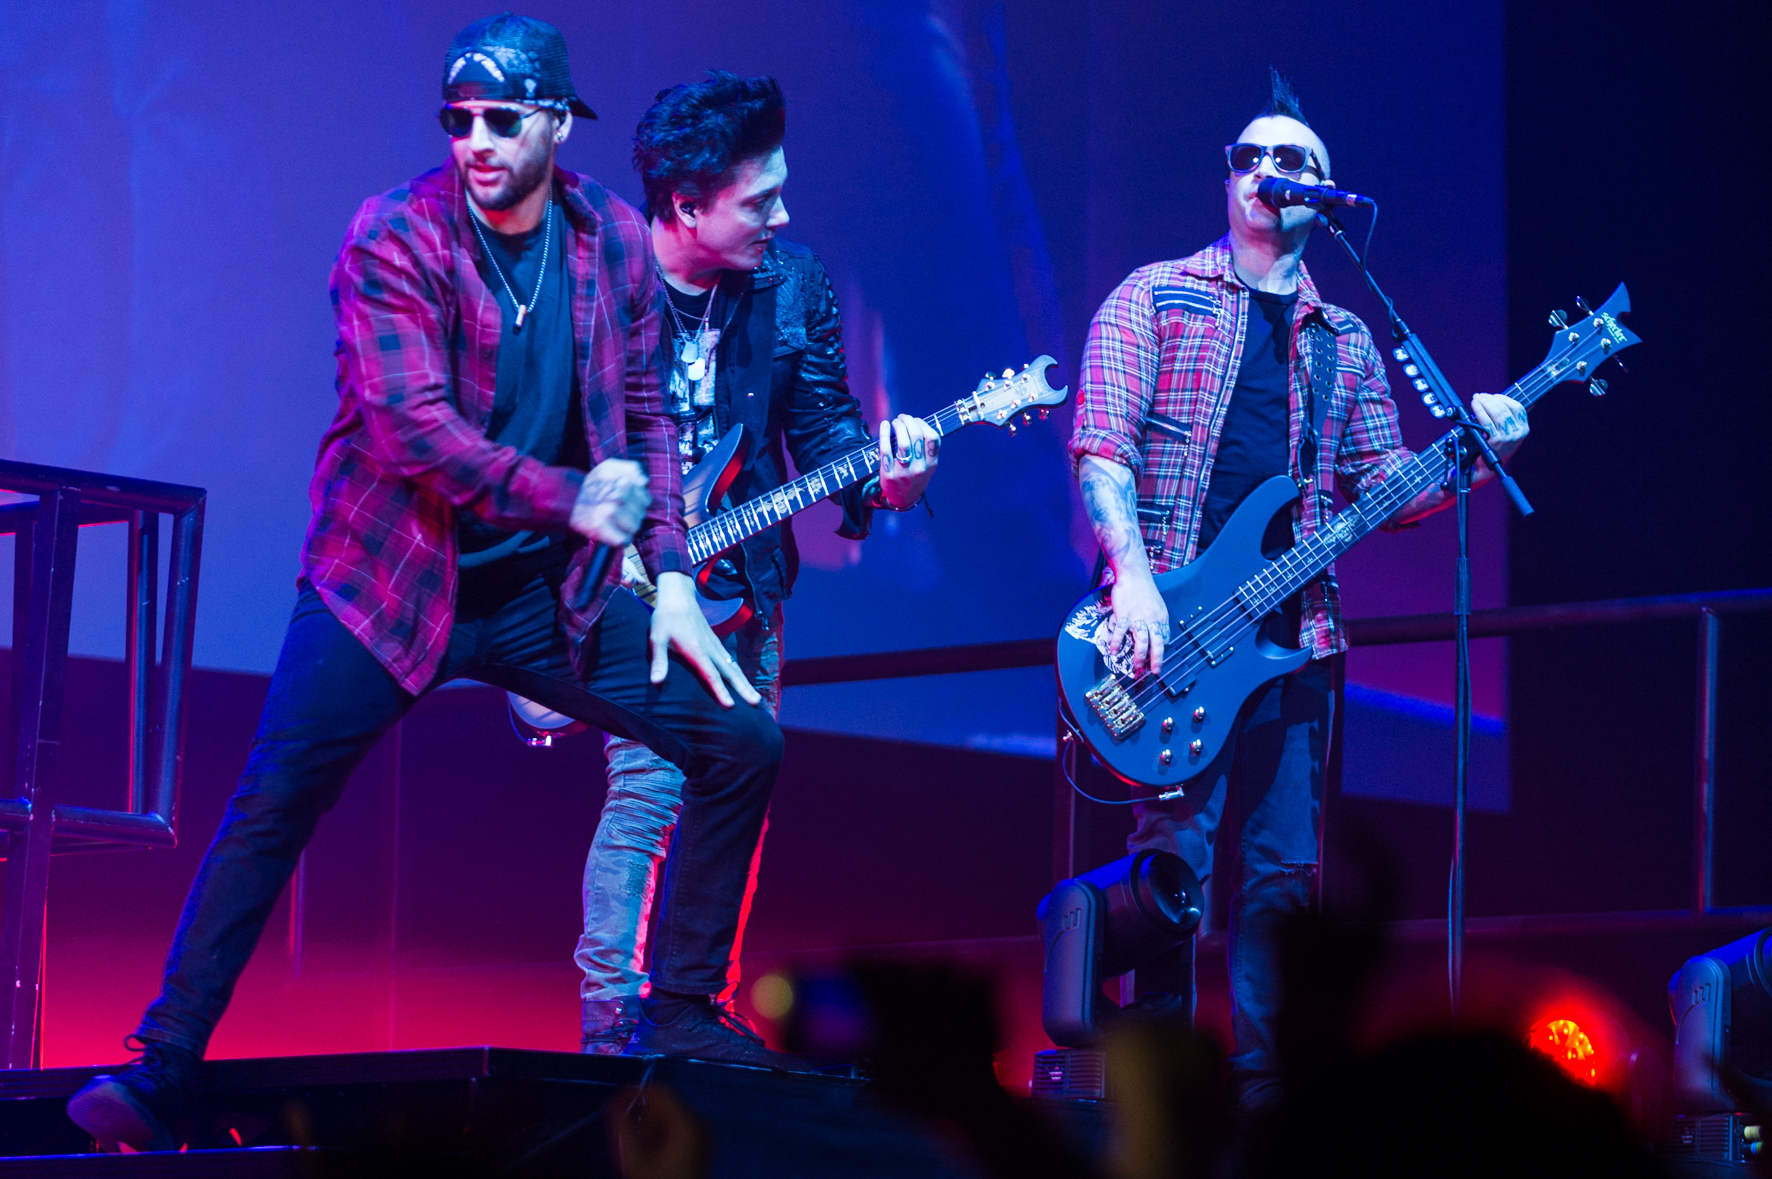 AVENGED SEVENFOLD – Hydro, Glasgow, 10 January 2017